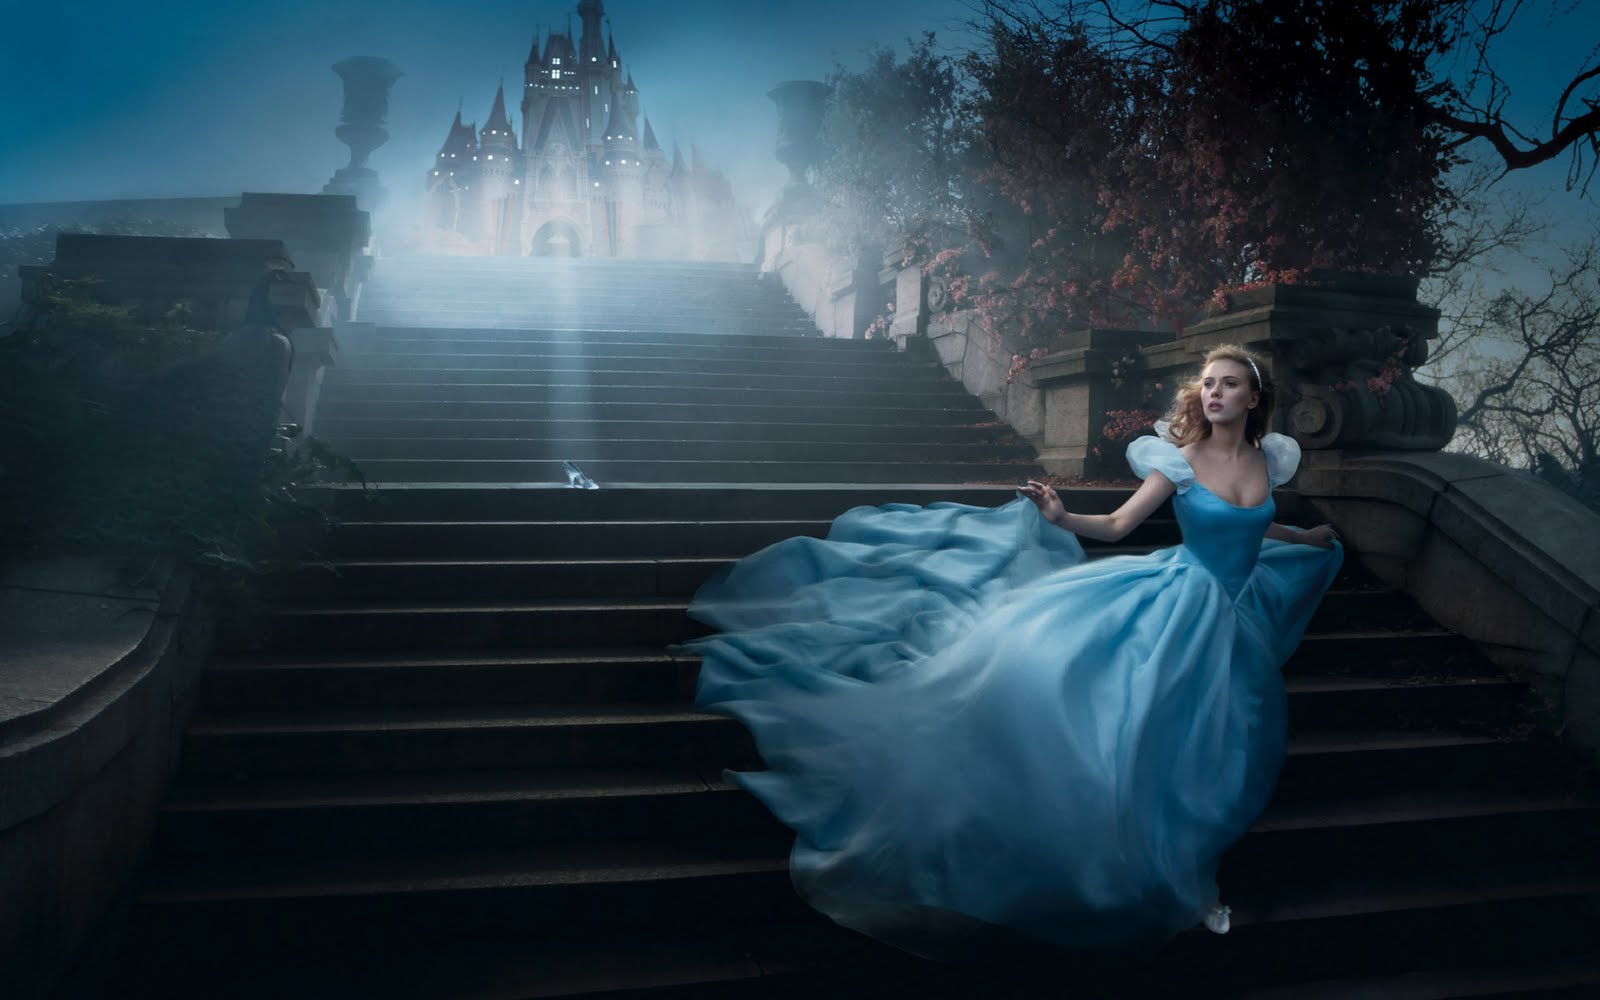 http://3.bp.blogspot.com/-iA_2NaZDlCs/Tk9s5Co5pII/AAAAAAAAAm4/hPdxgzY-95M/s1600/scarlett-as-cinderella-wallpapers_9069_1920x1200-767769.jpg